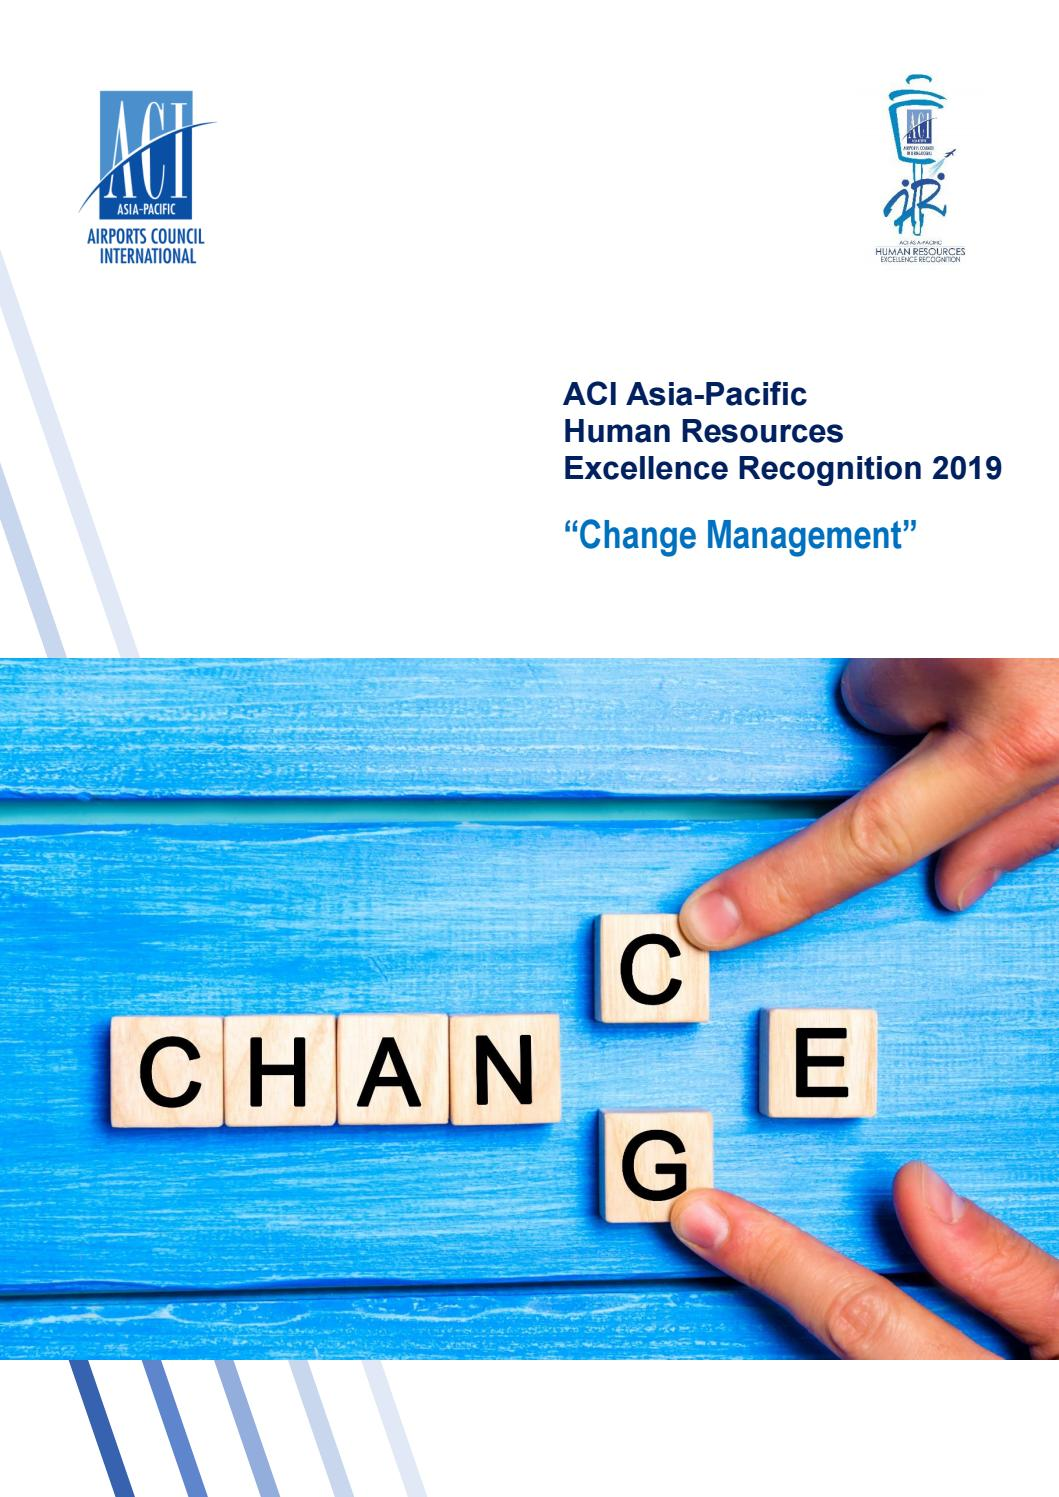 ACI Asia-Pacific Human Resources Excellence Recognition 2019